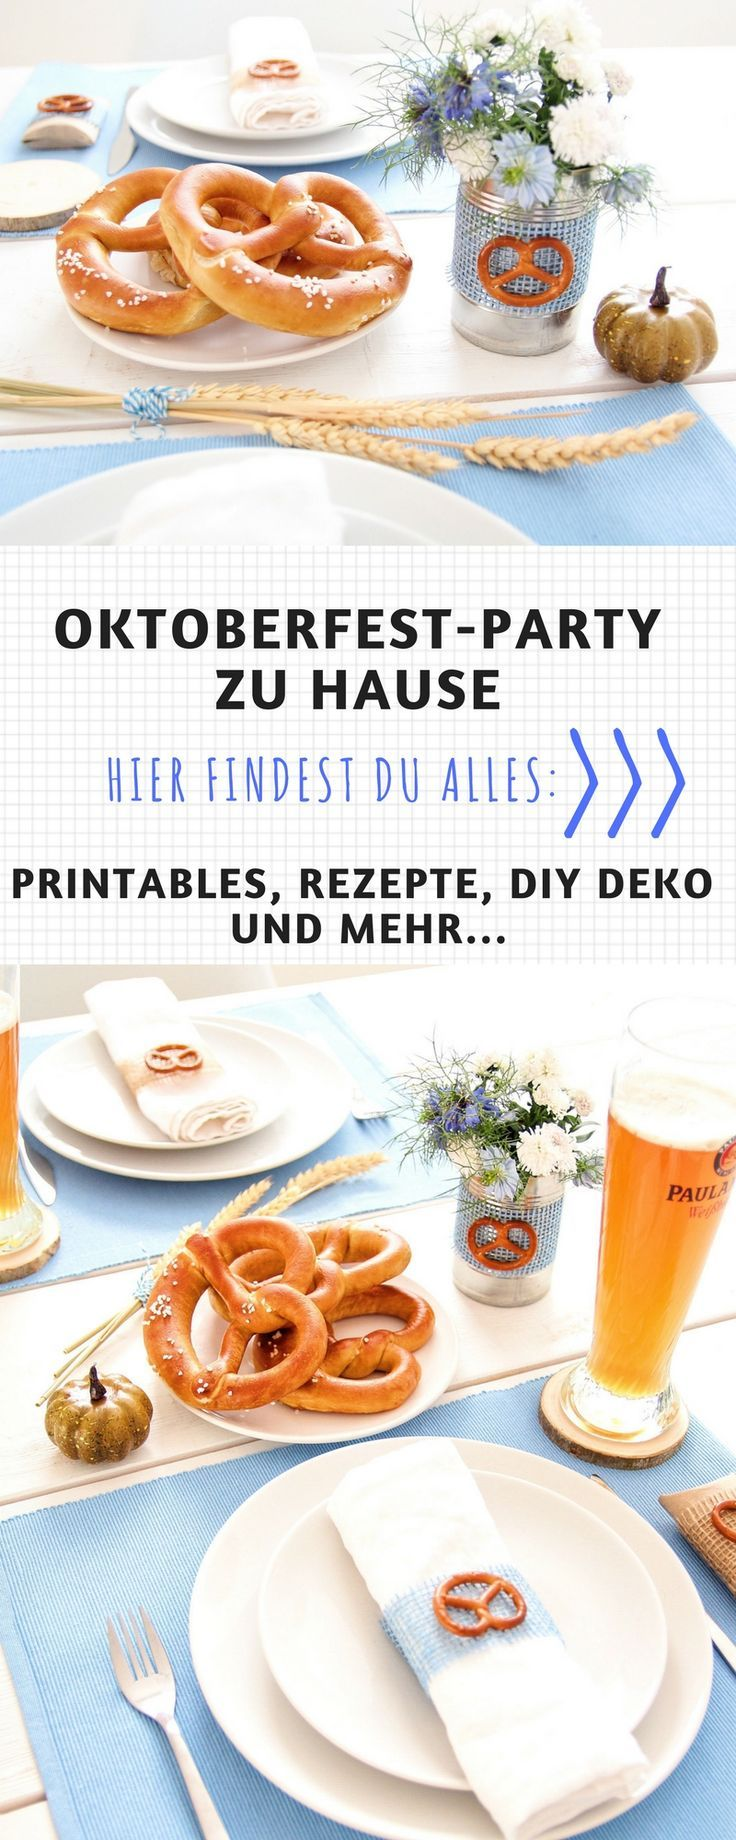 Oktoberfest-Party Zuhause #octoberfestfood